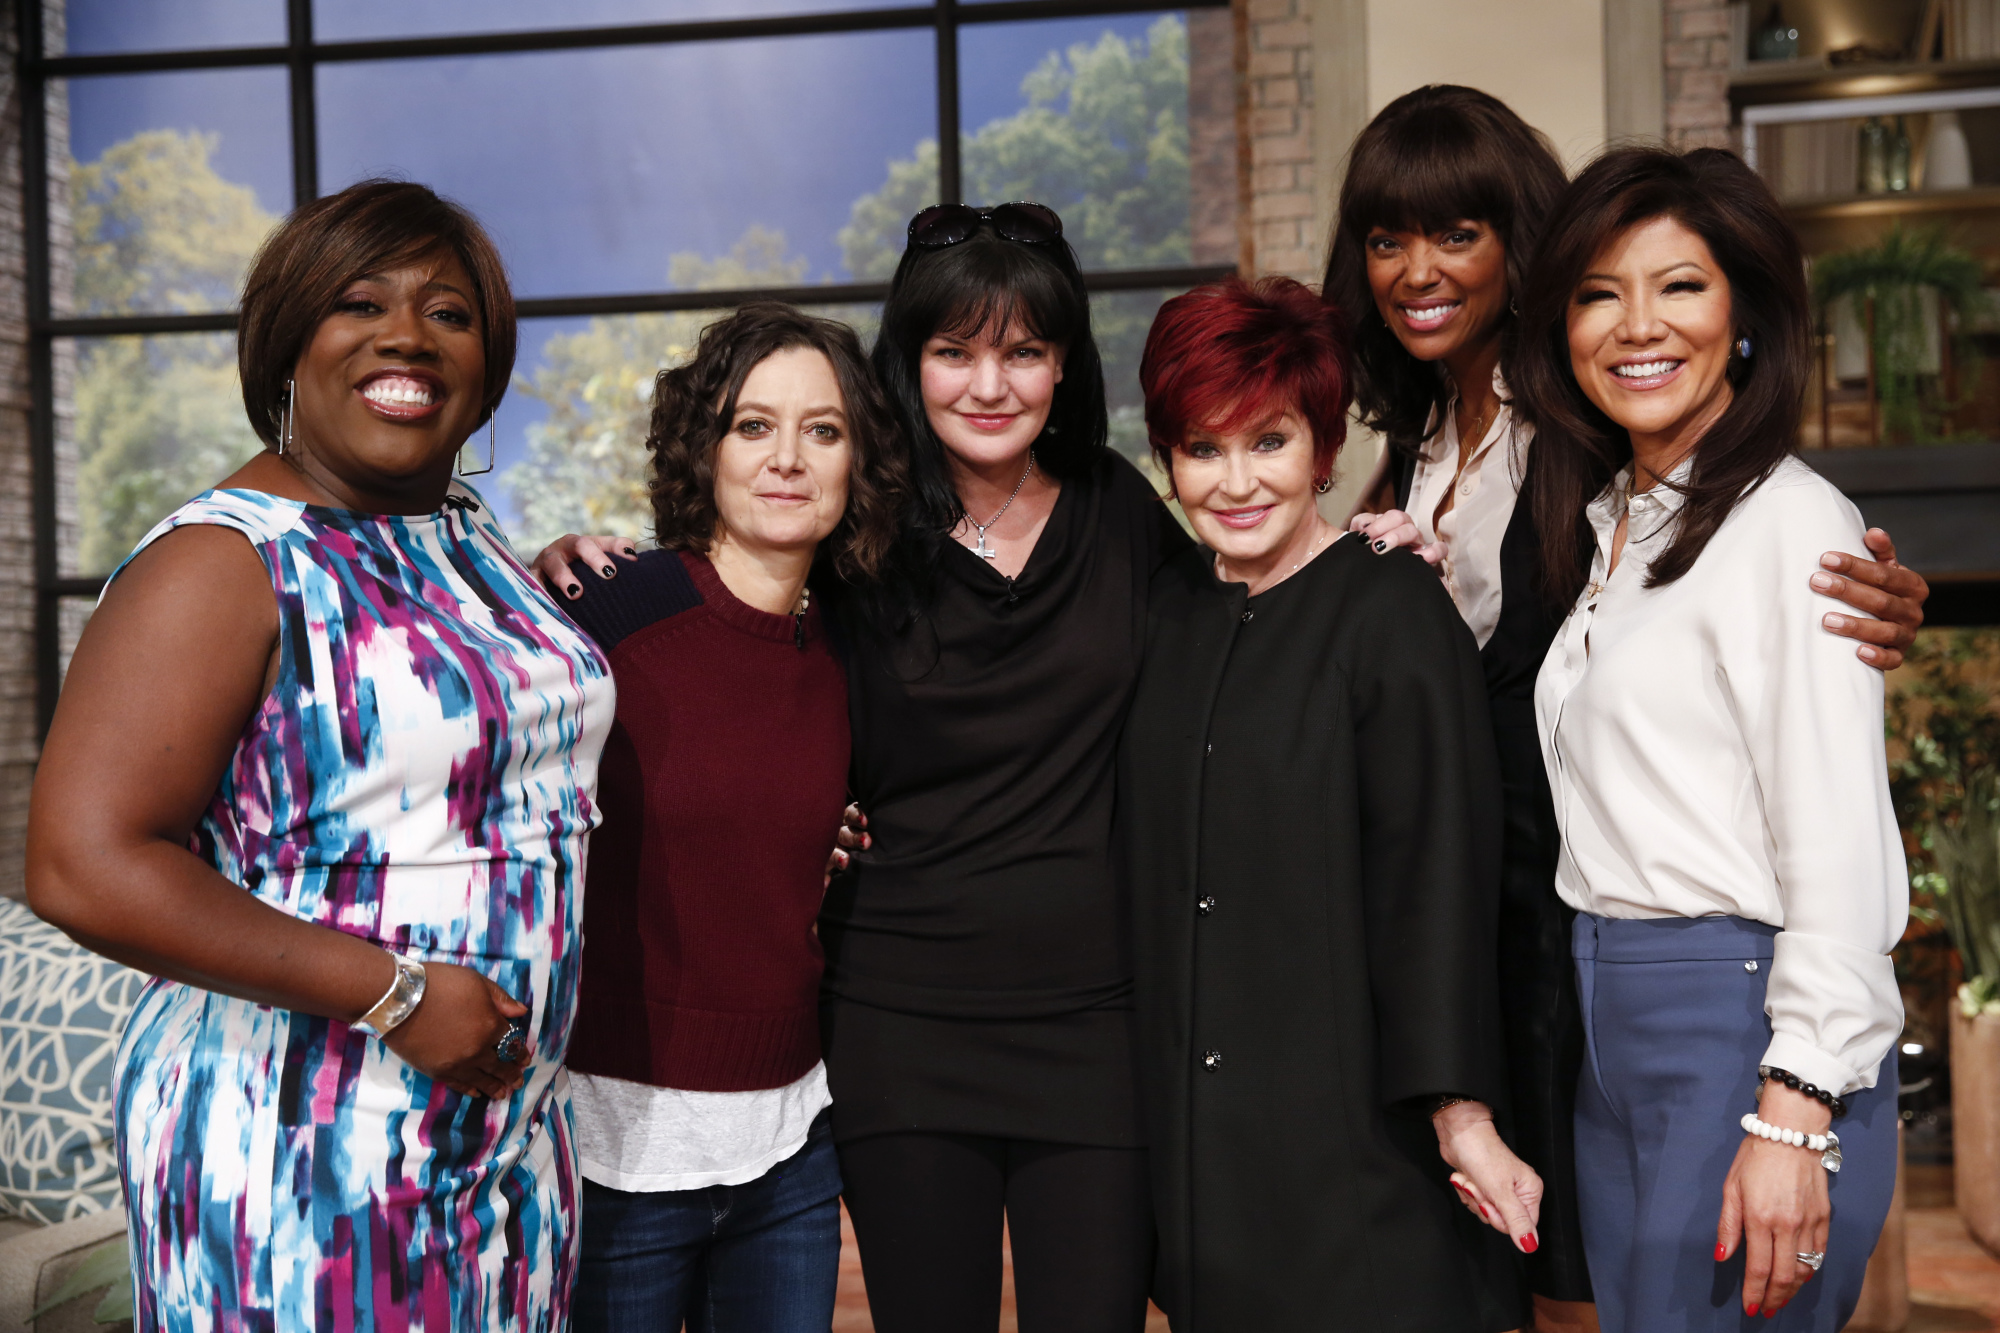 3. Talking NCIS with Pauley Perrette.